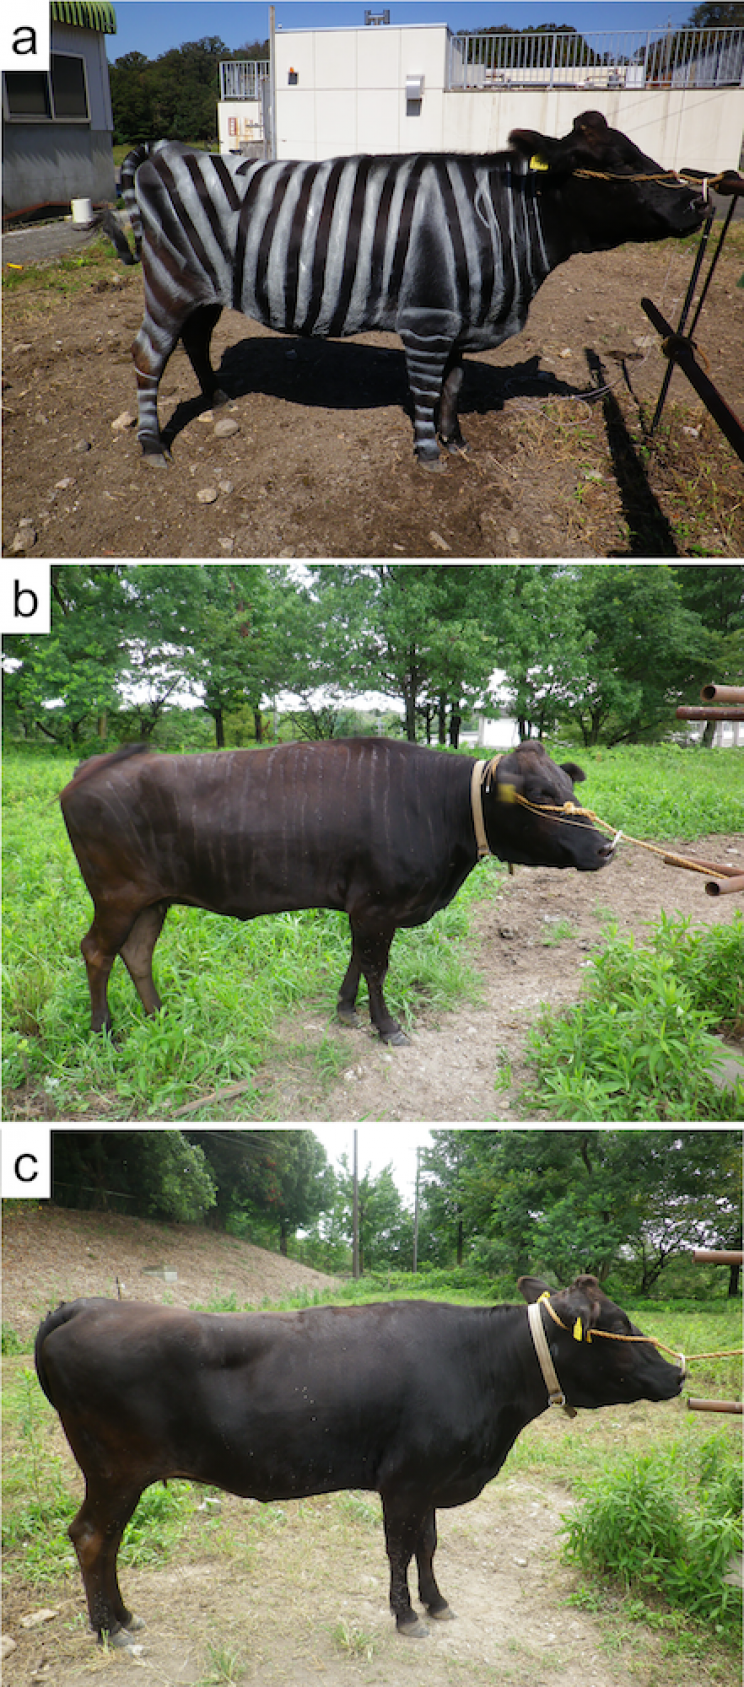 Japanese Scientists Painted Cows to Resemble Zebras and Prevent Biting Flies